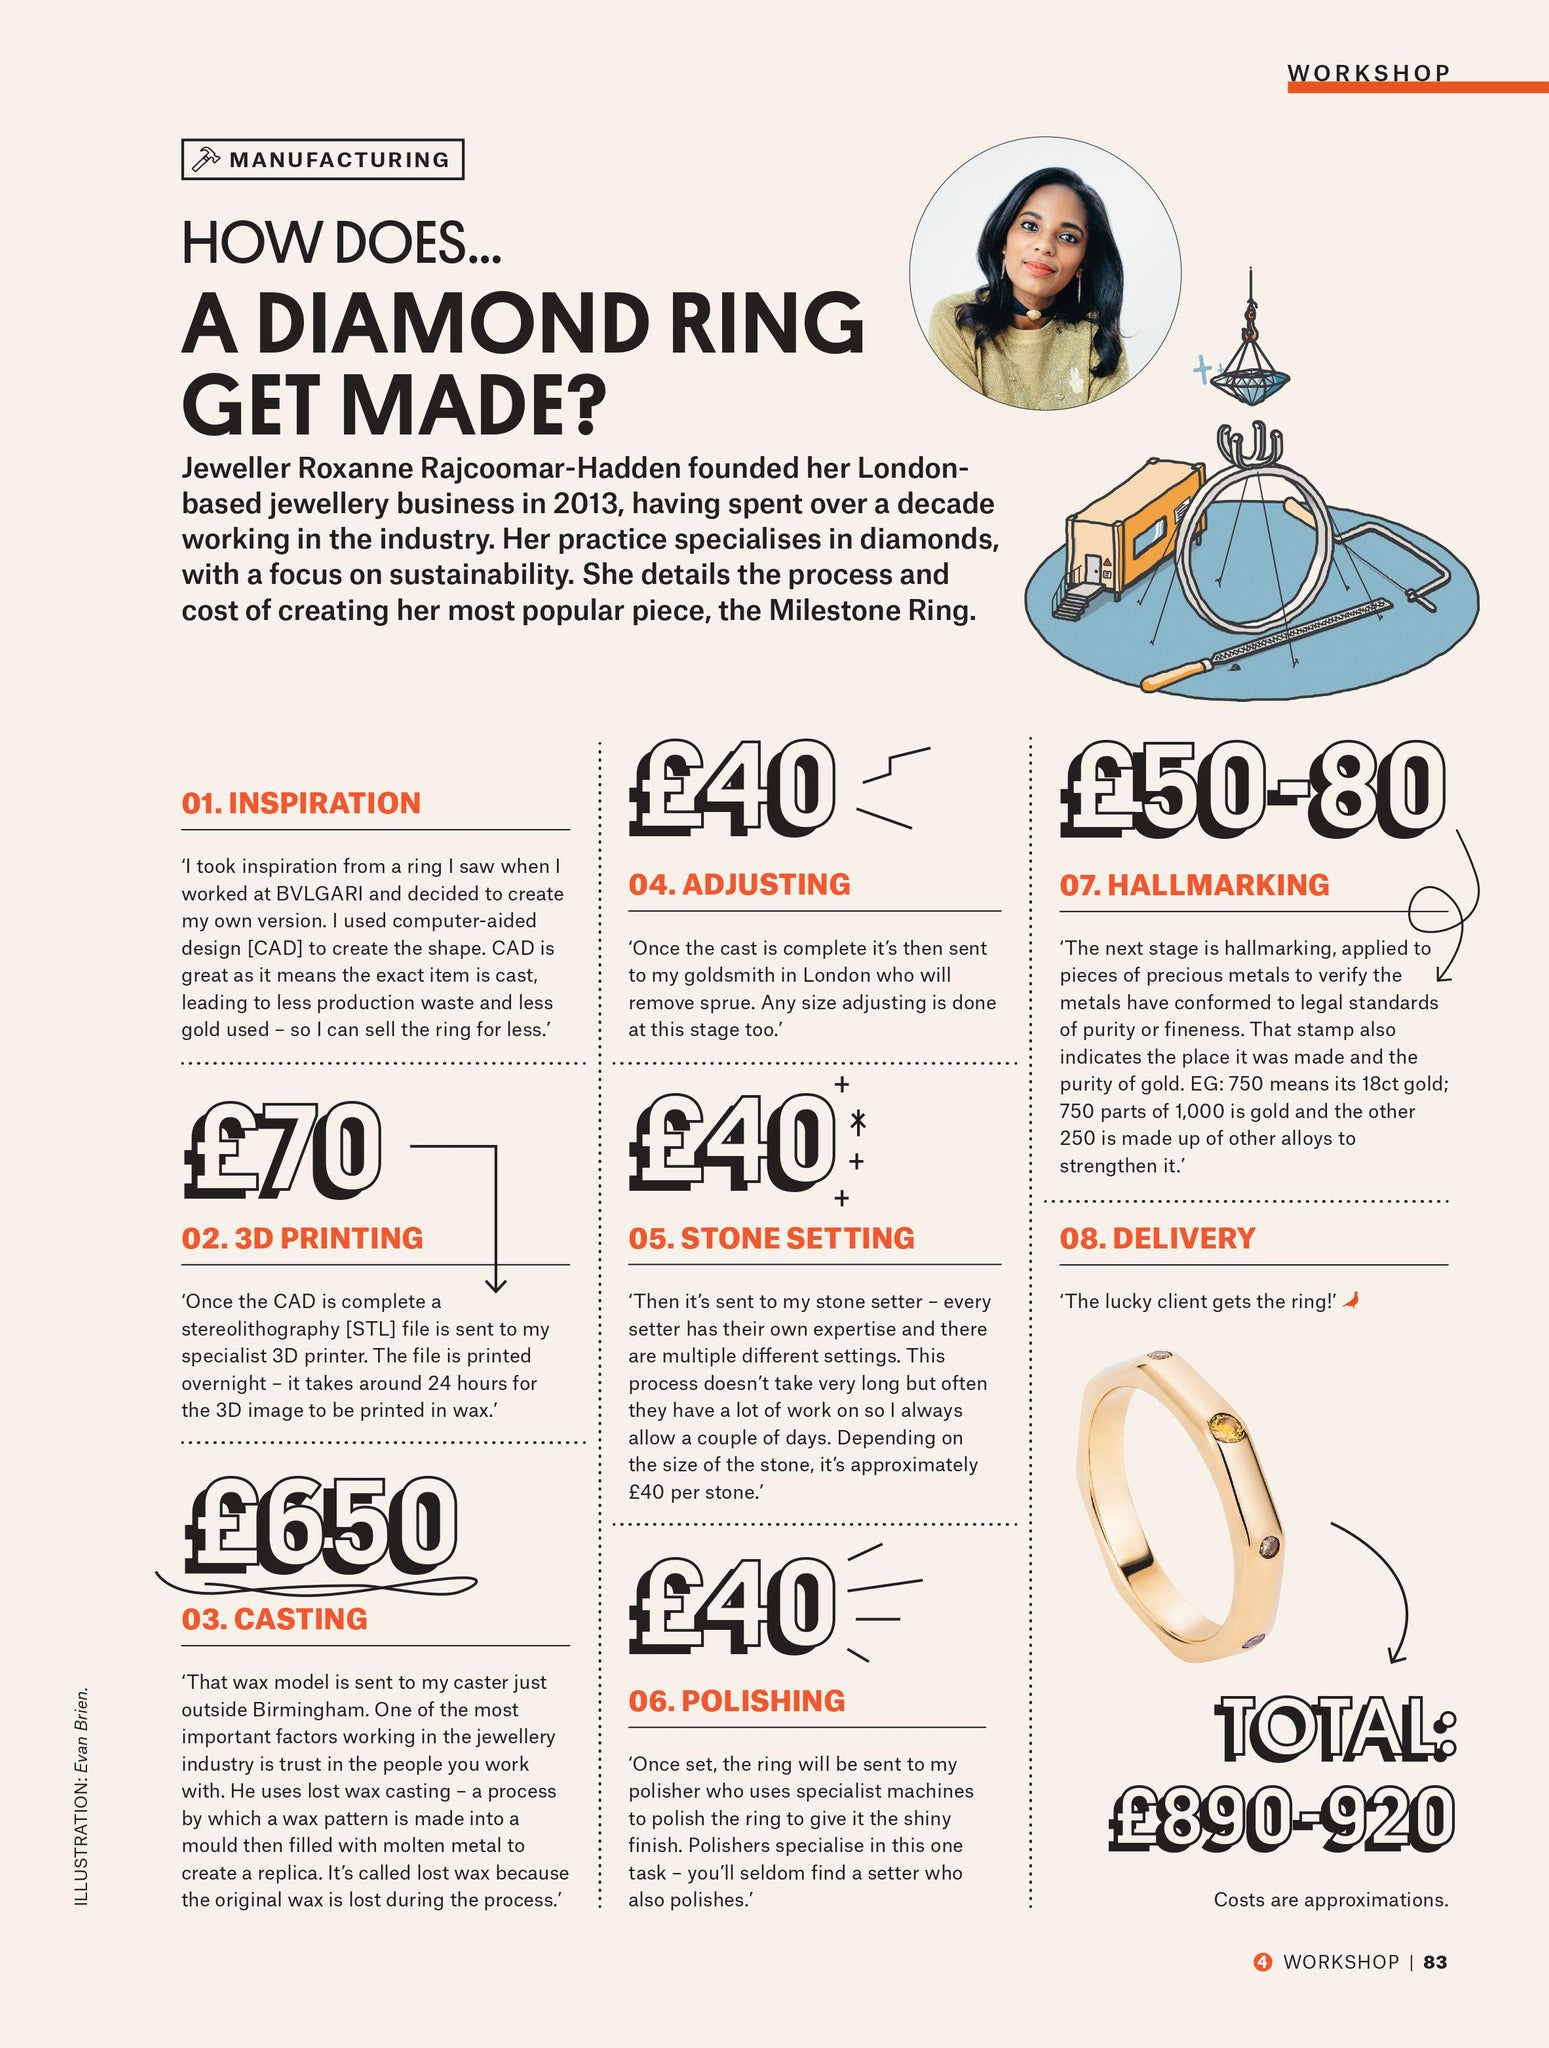 Courier Magazine, The Milestone Ring